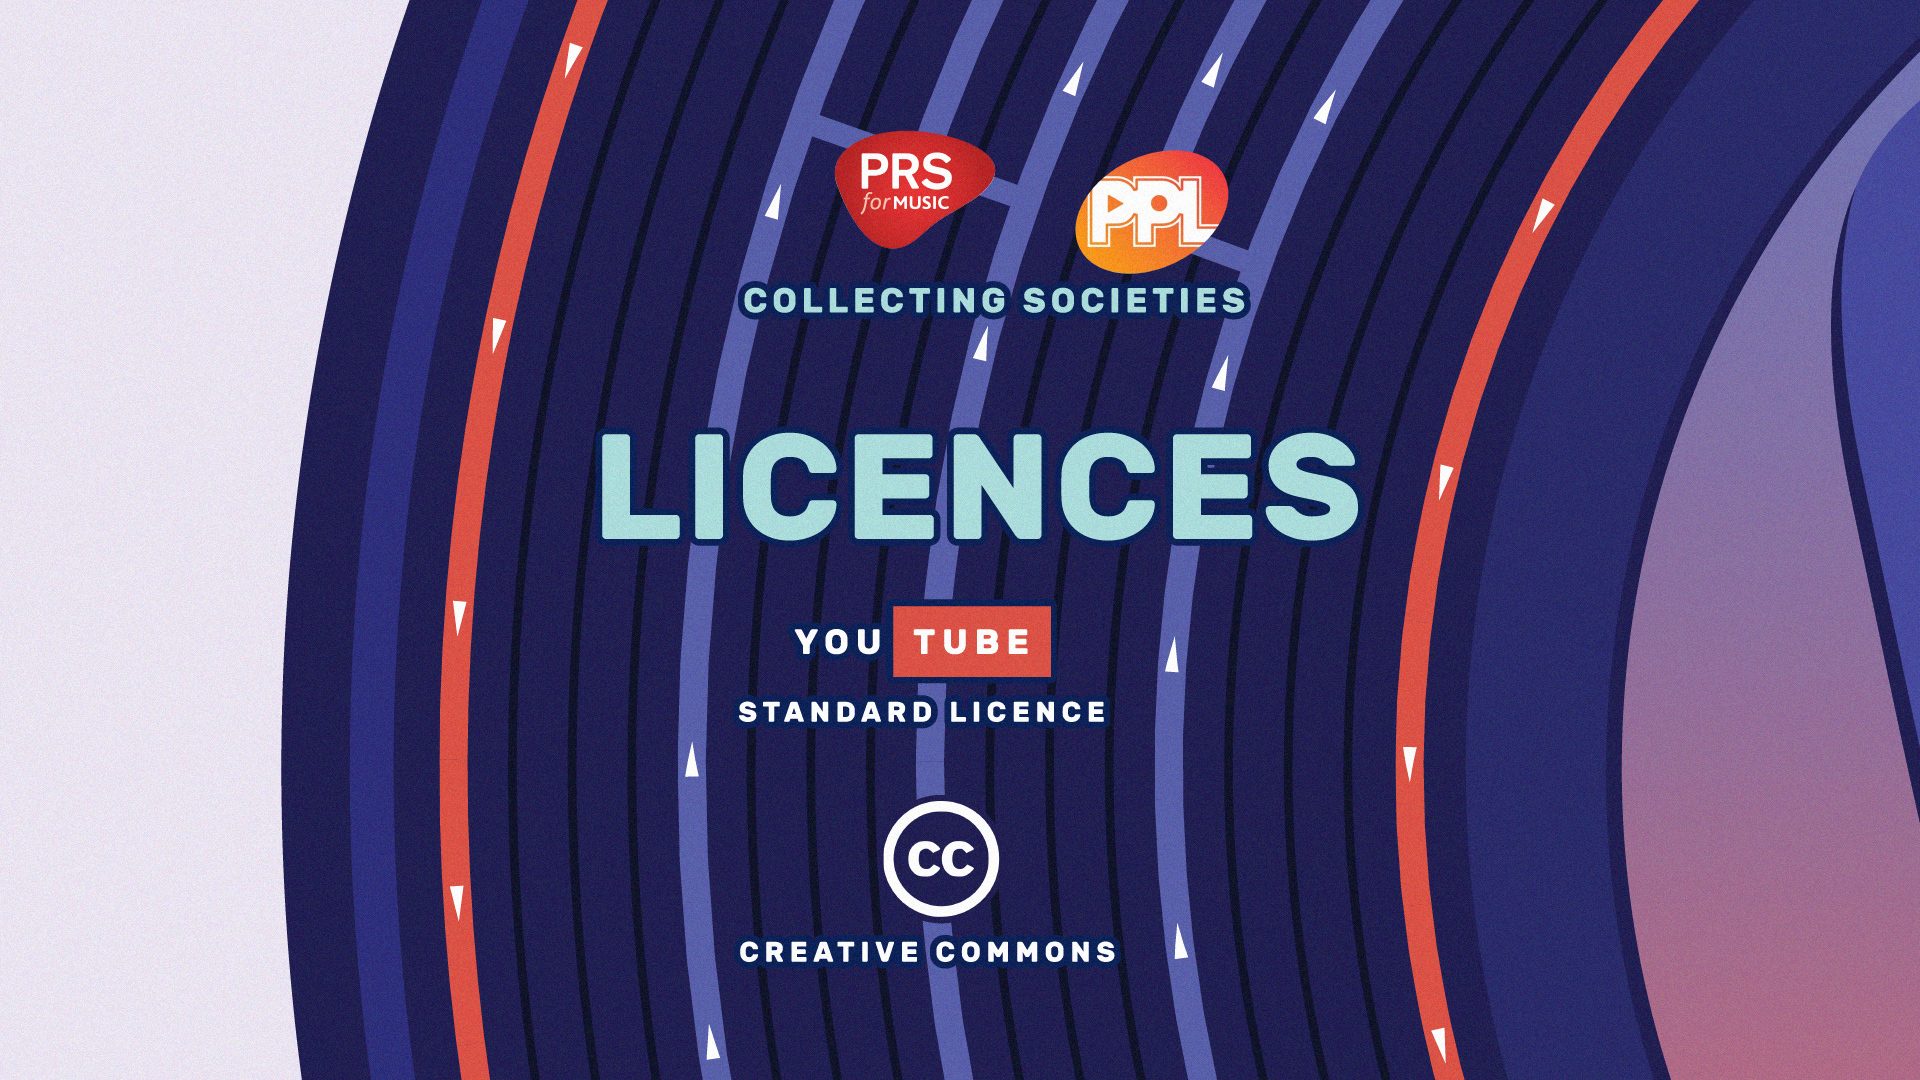 Logos for PRS, PPL, Creative Commons, and YouTube standard licences.